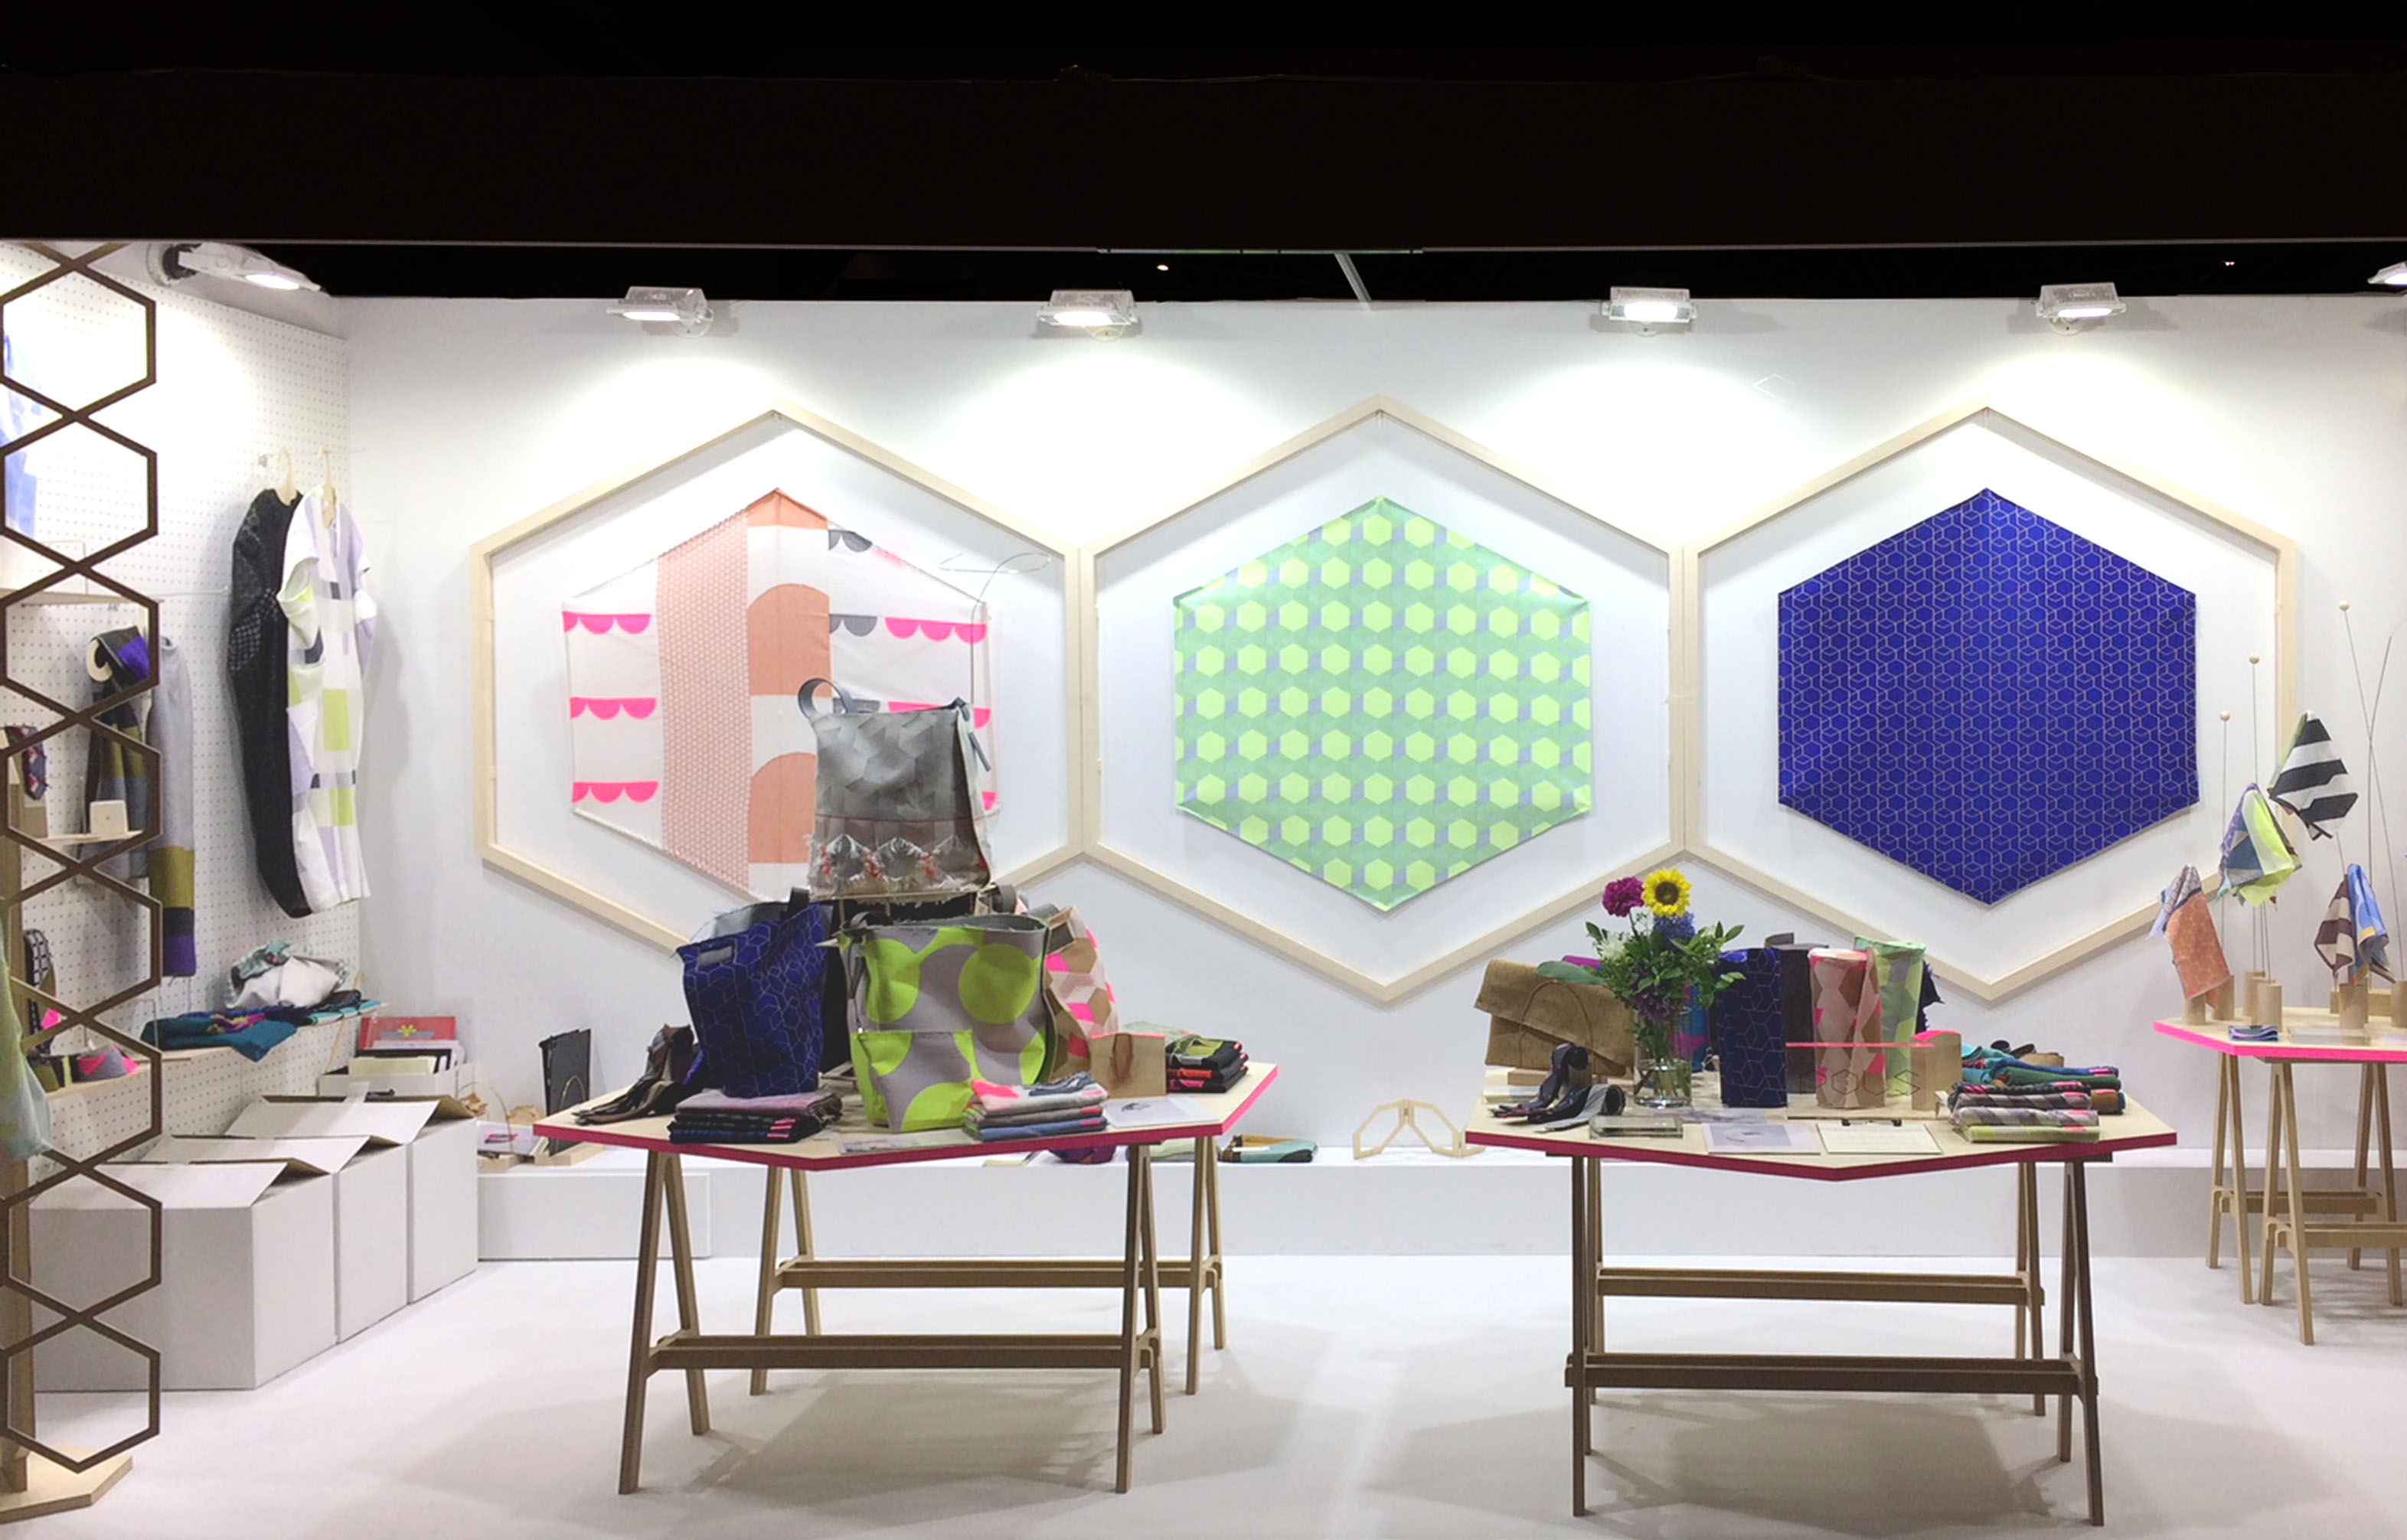 photo: Interior Lifestyle Tokyo in June 2017, POLS BAGS Debut